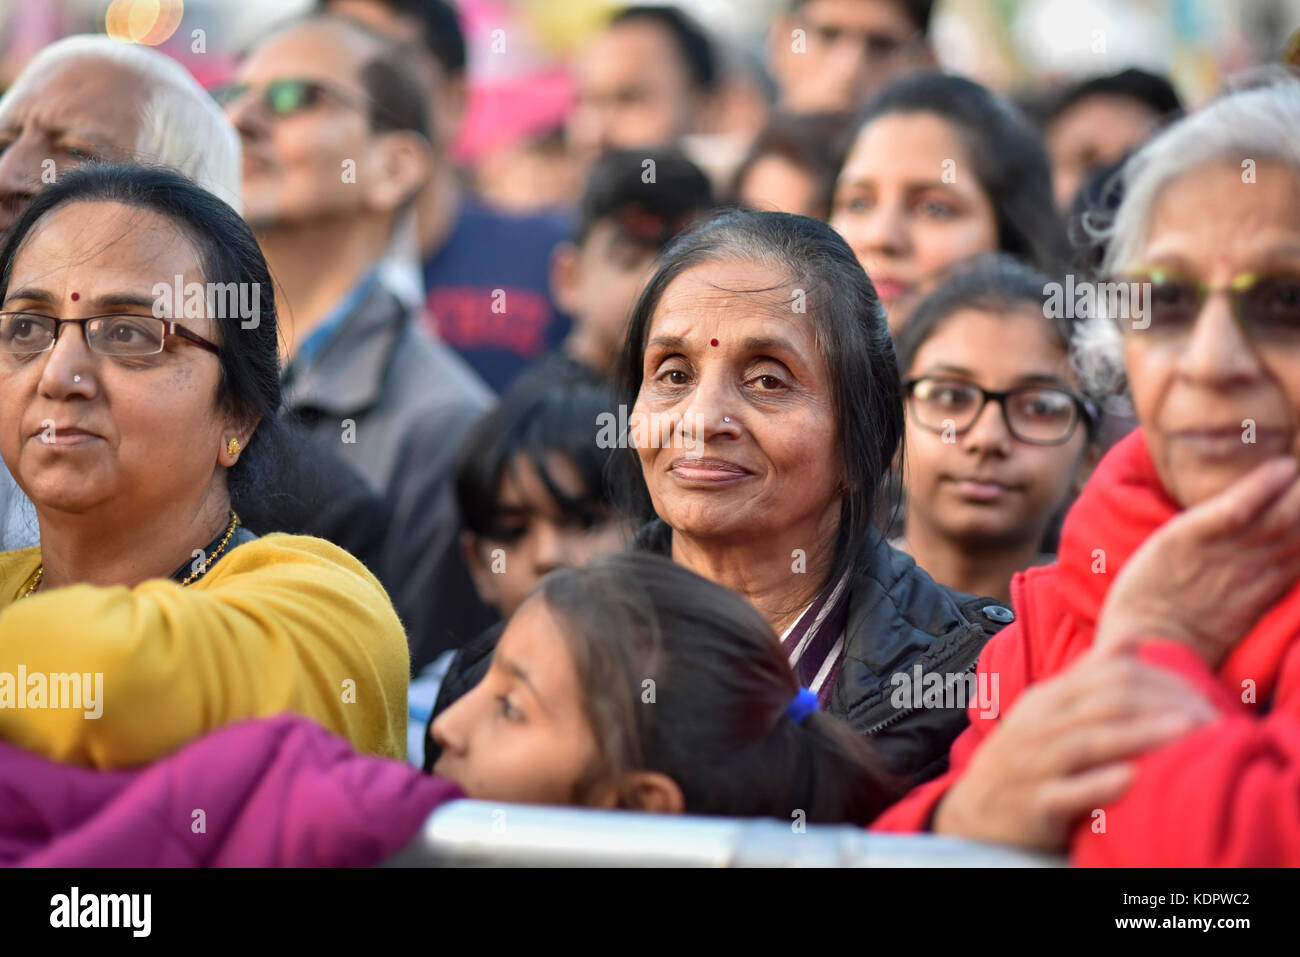 London, UK. 15th Oct, 2017. Visitors view stage performances at Diwali, the 'Festival of Lights', in Trafalgar Square. Stock Photo